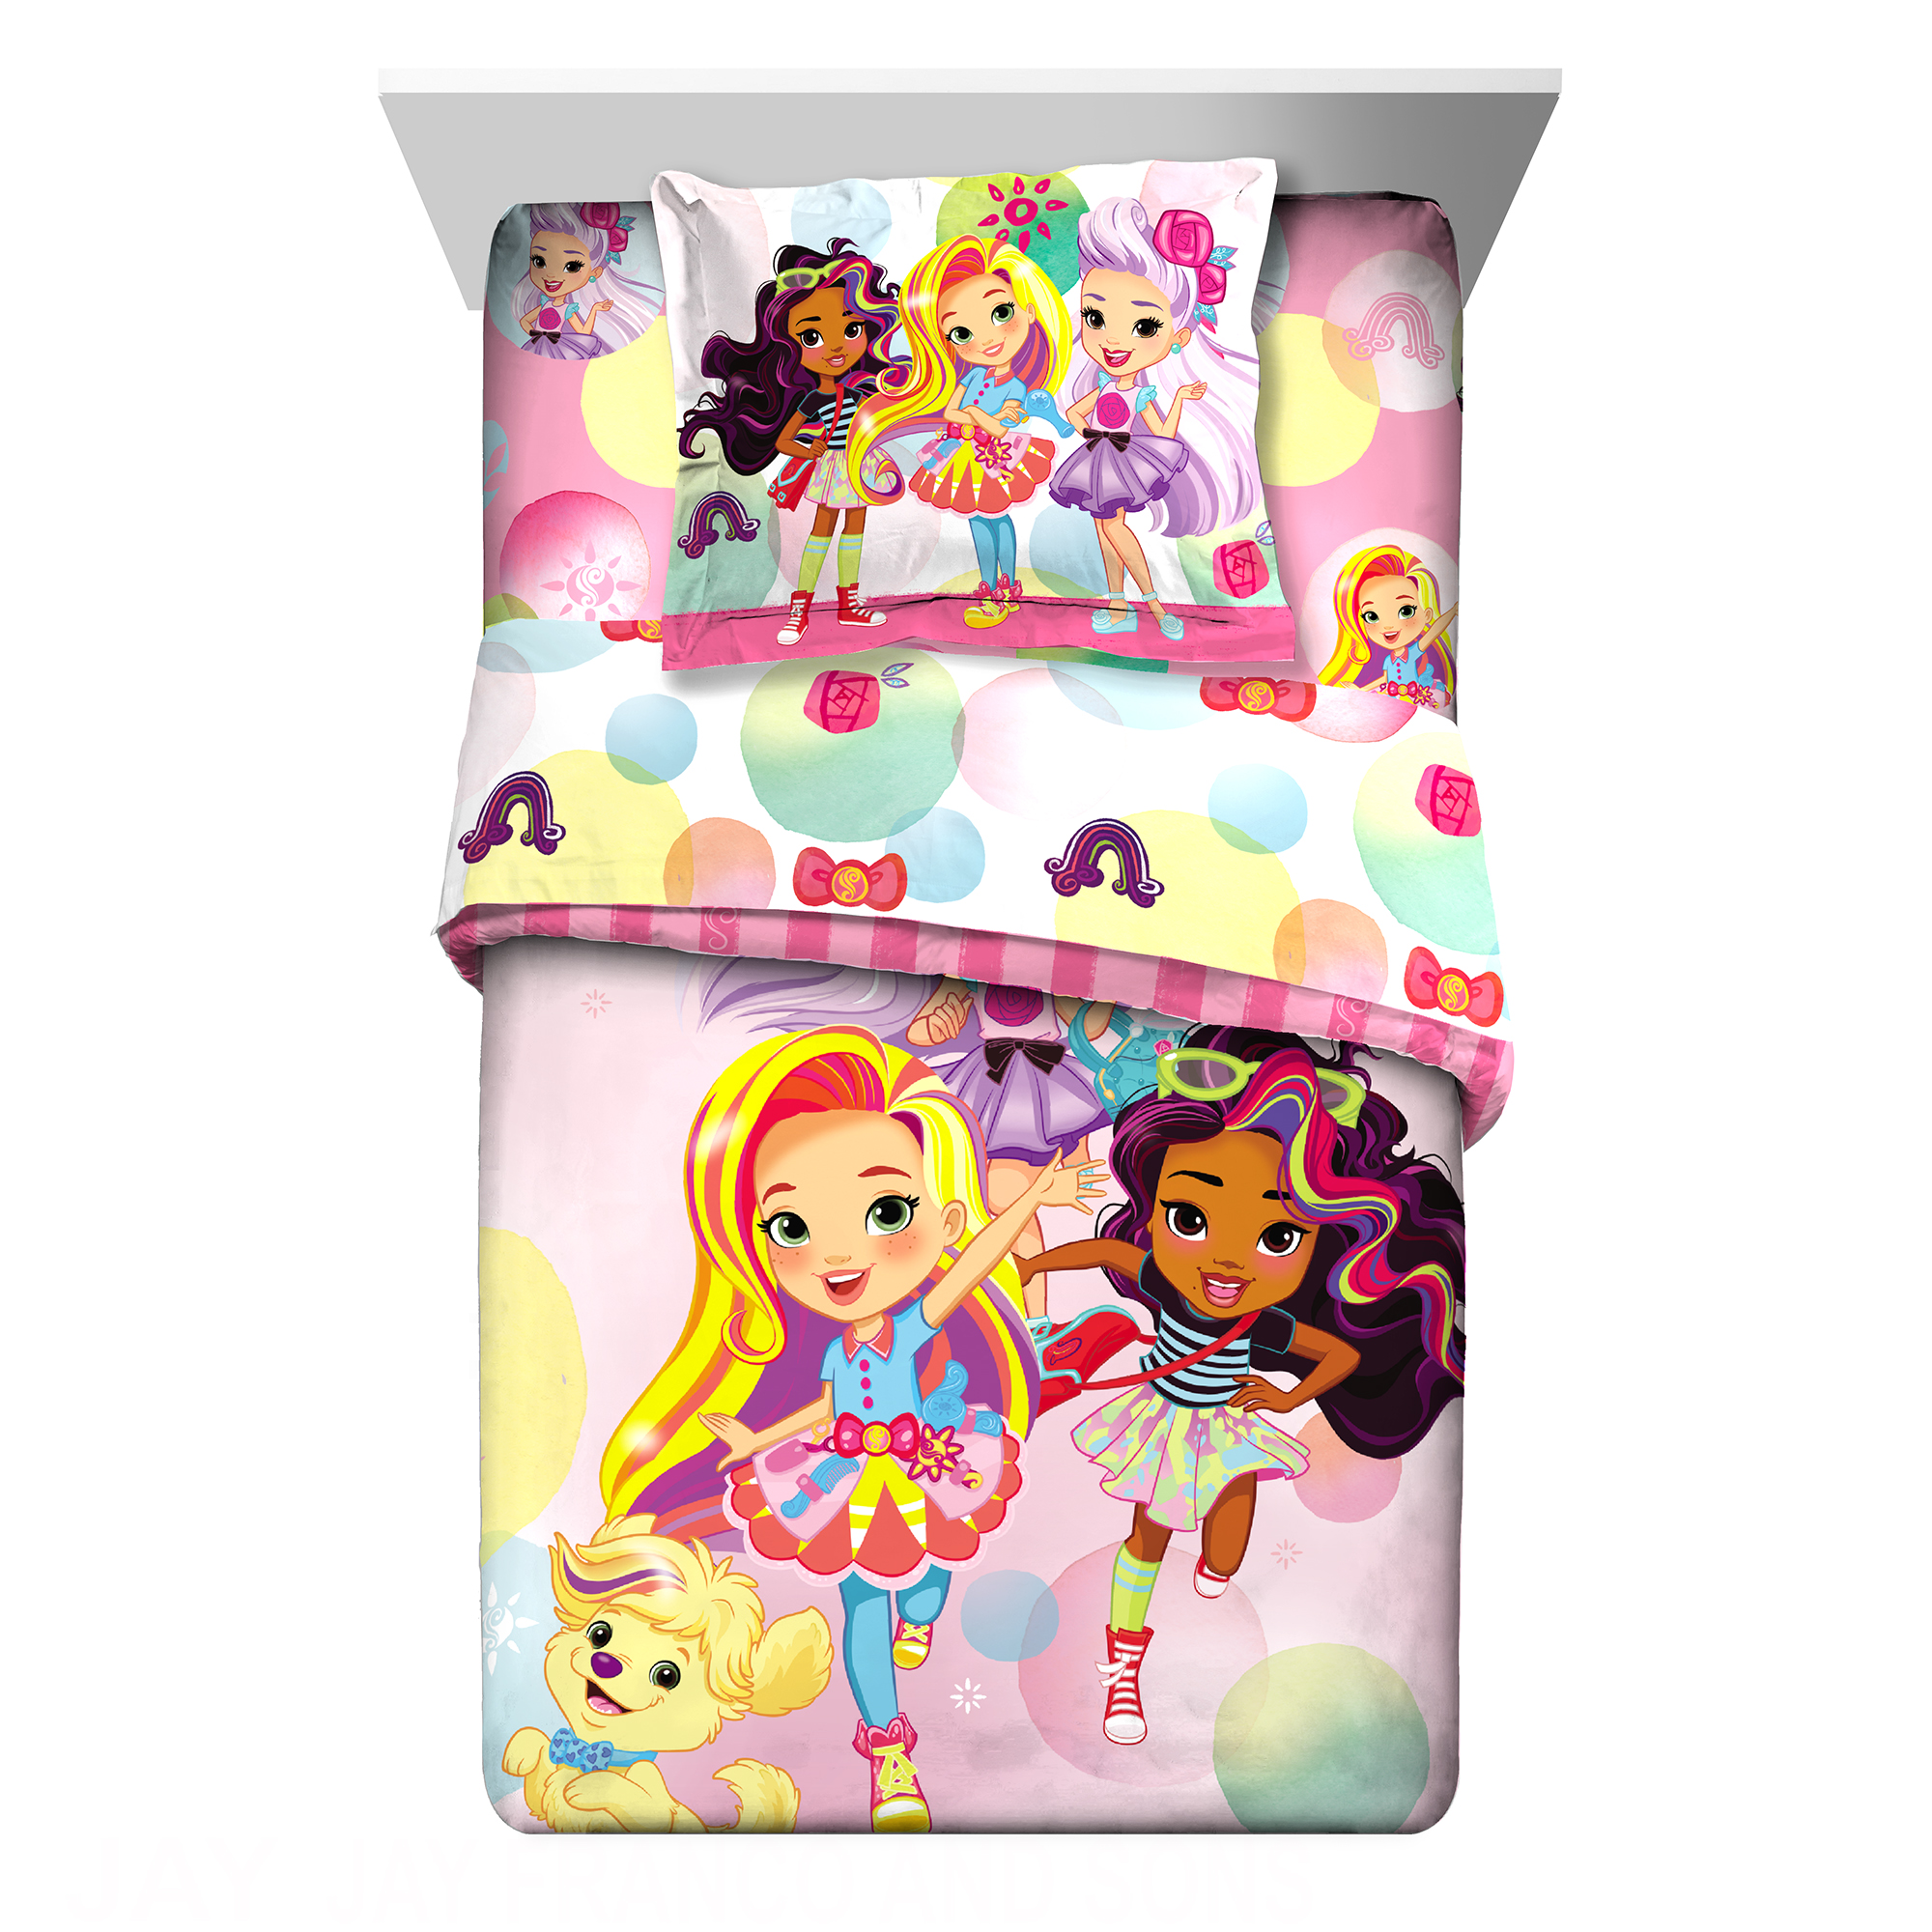 Sunny Day Sunny Bubbles 2 PC Kids Bedding Twin/Full Comforter with Sham